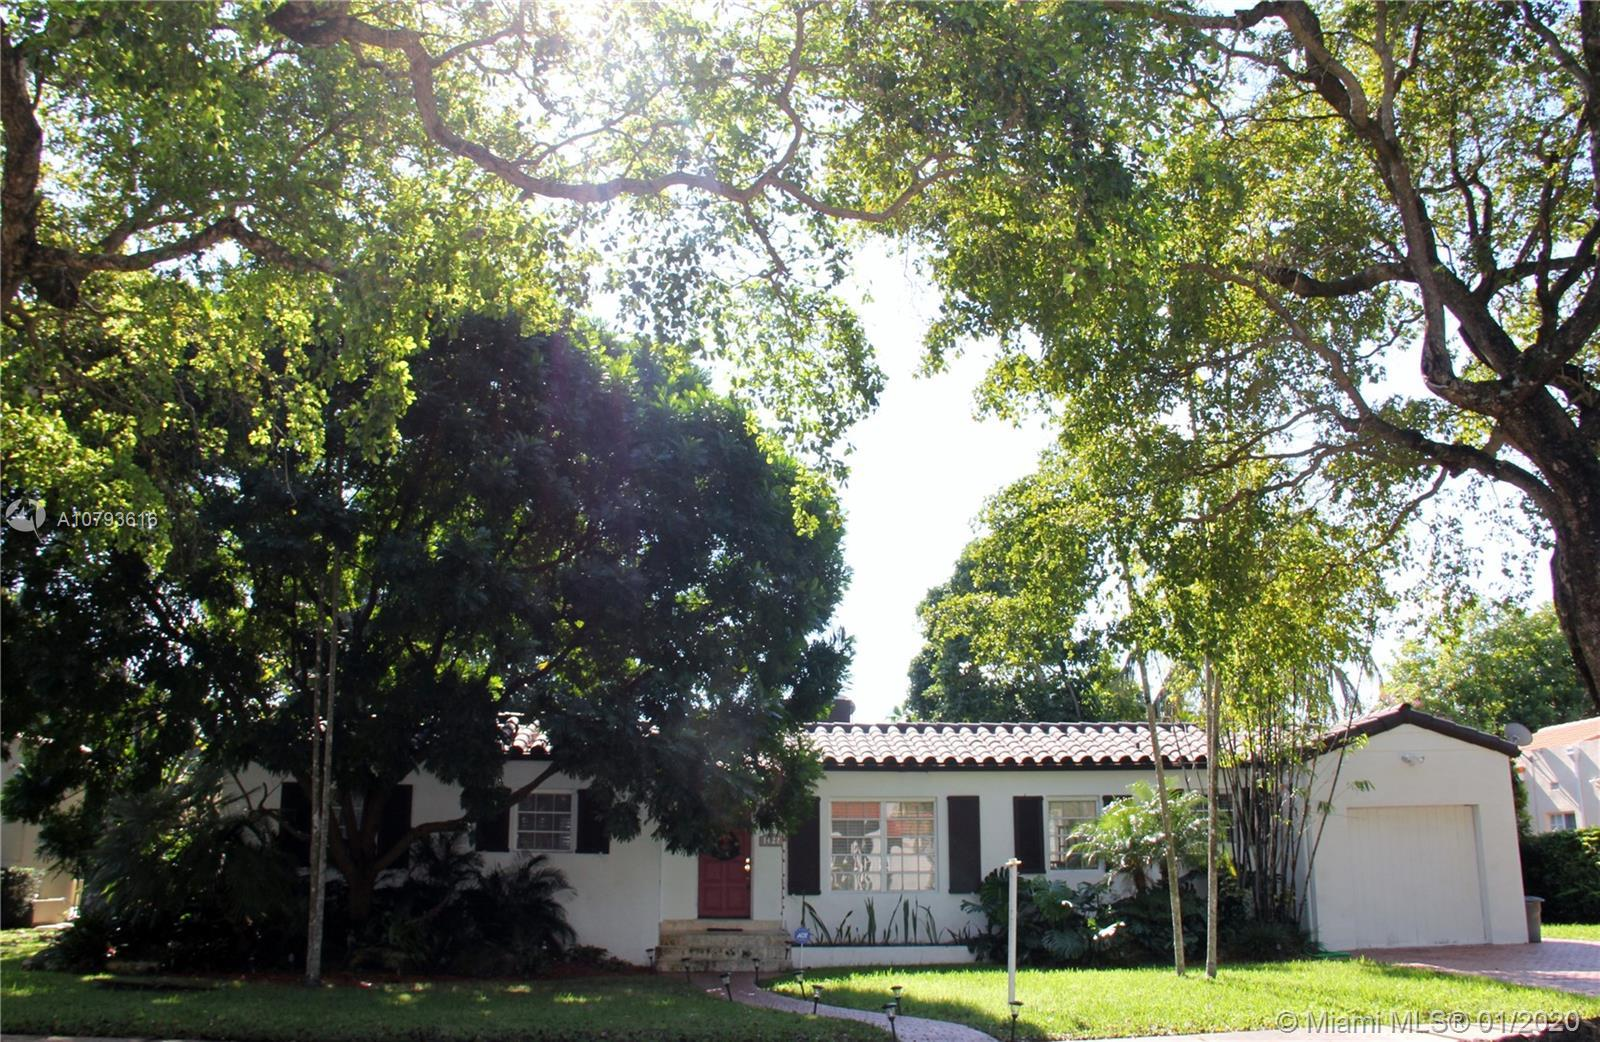 GORGEOUS HOUSE AT CORAL GABLES. 3 BEDROOMS, 2 FULL BATHROOMS, FAMILY ROOM, STUDIO. CREAM IVORY MARBL